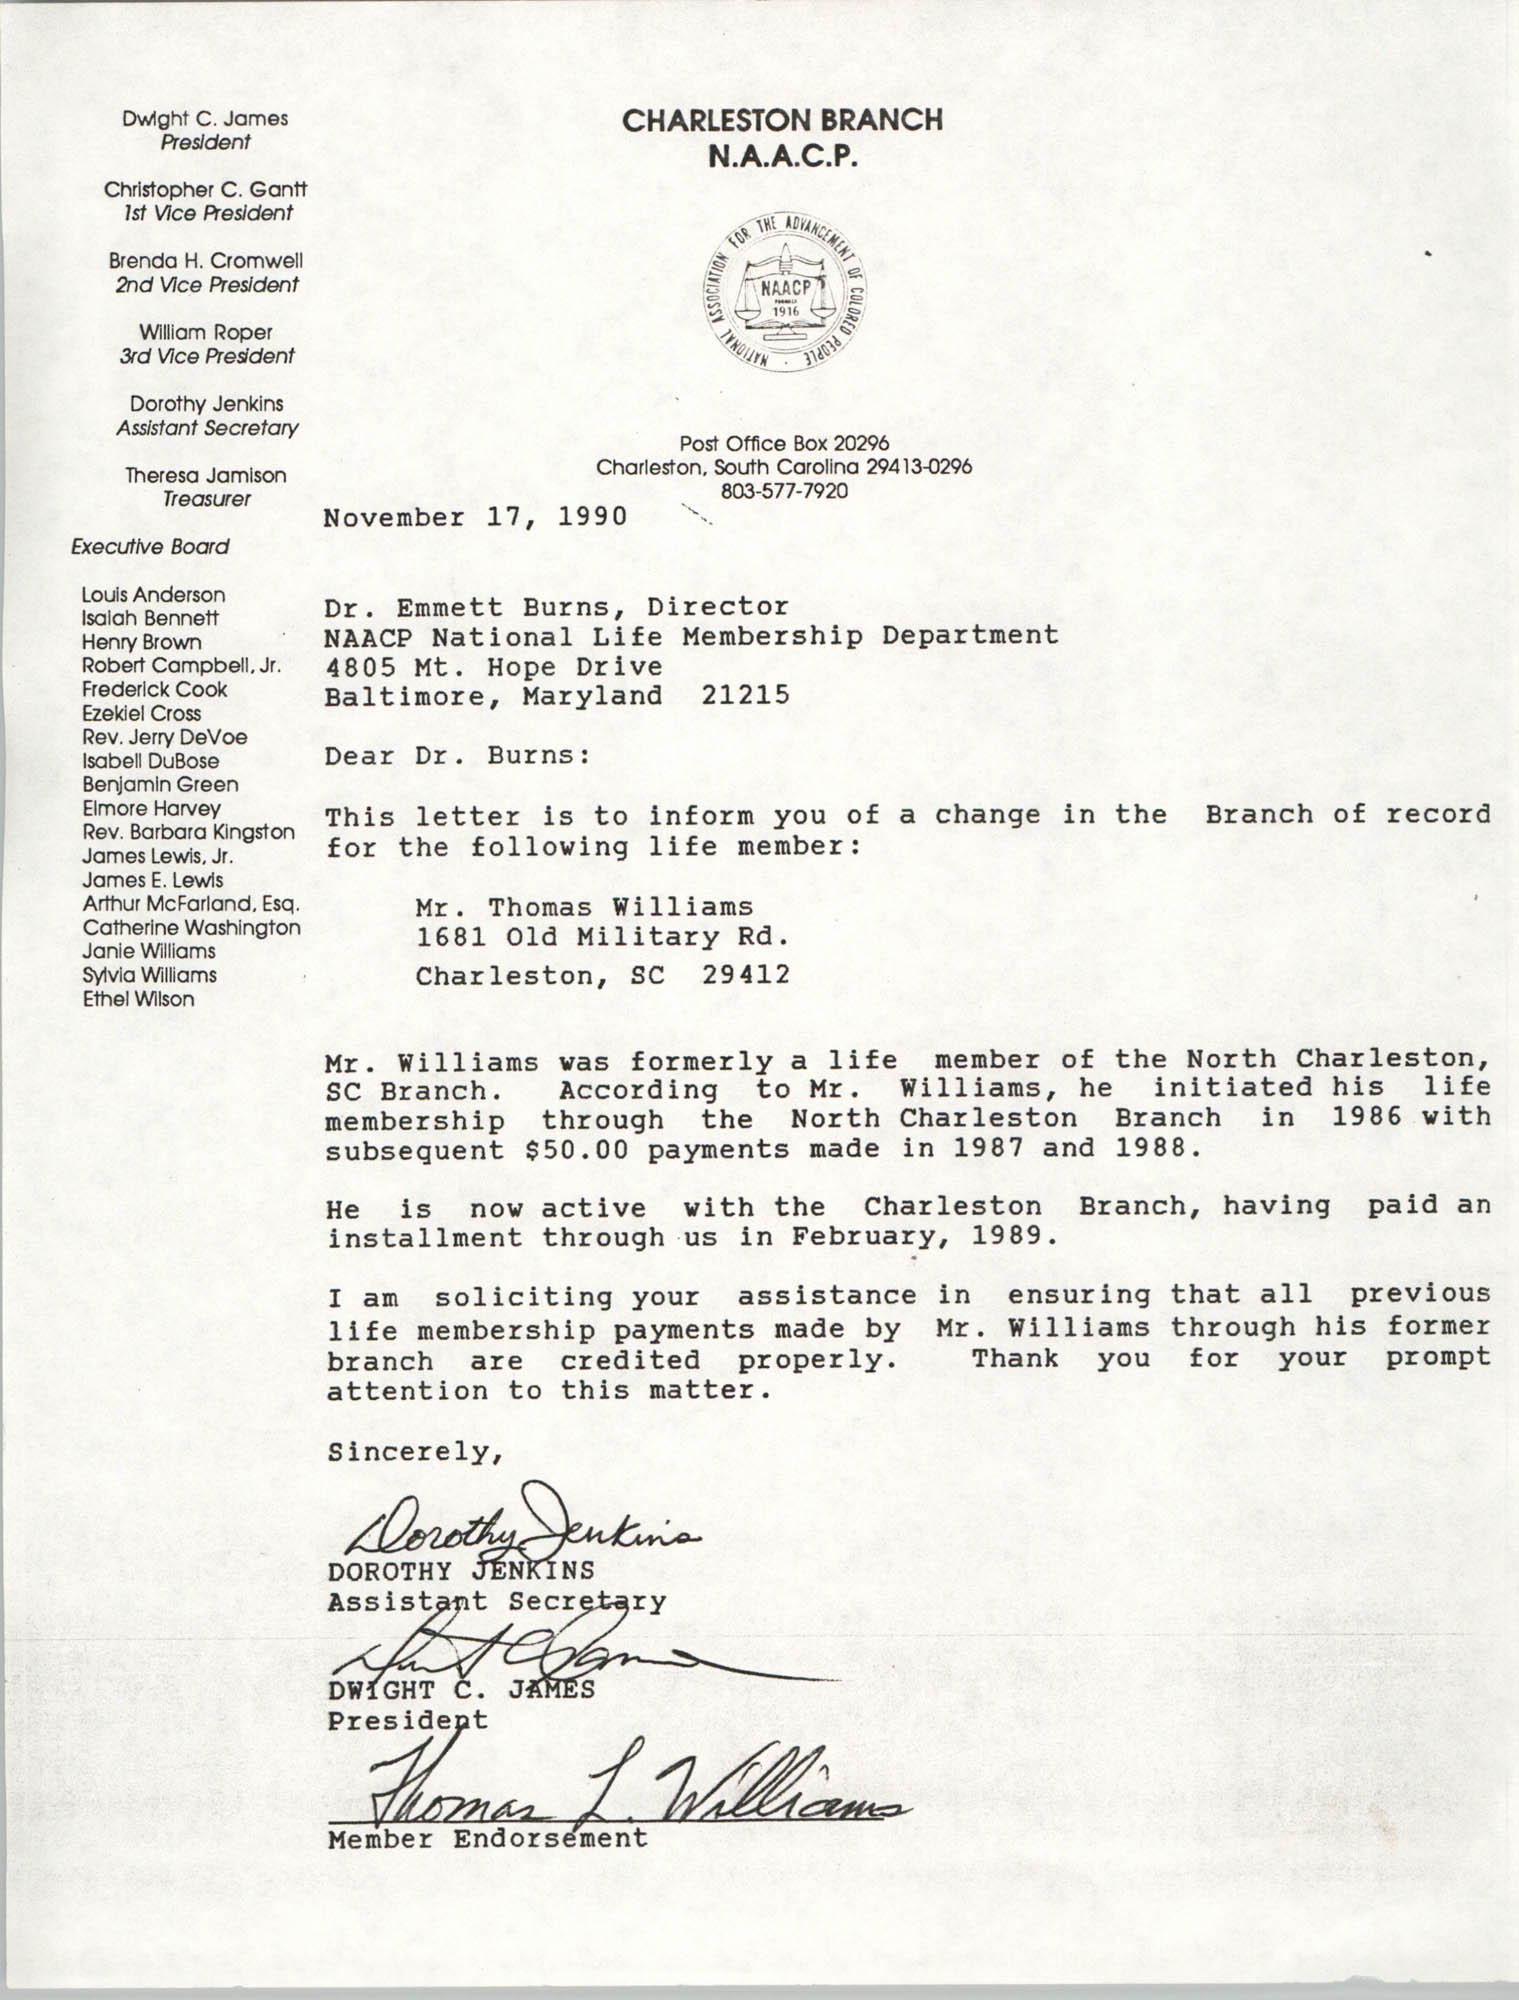 Letter from Dorothy Jenkins and Dwight C. James to Emmett Burns, November 17, 1990